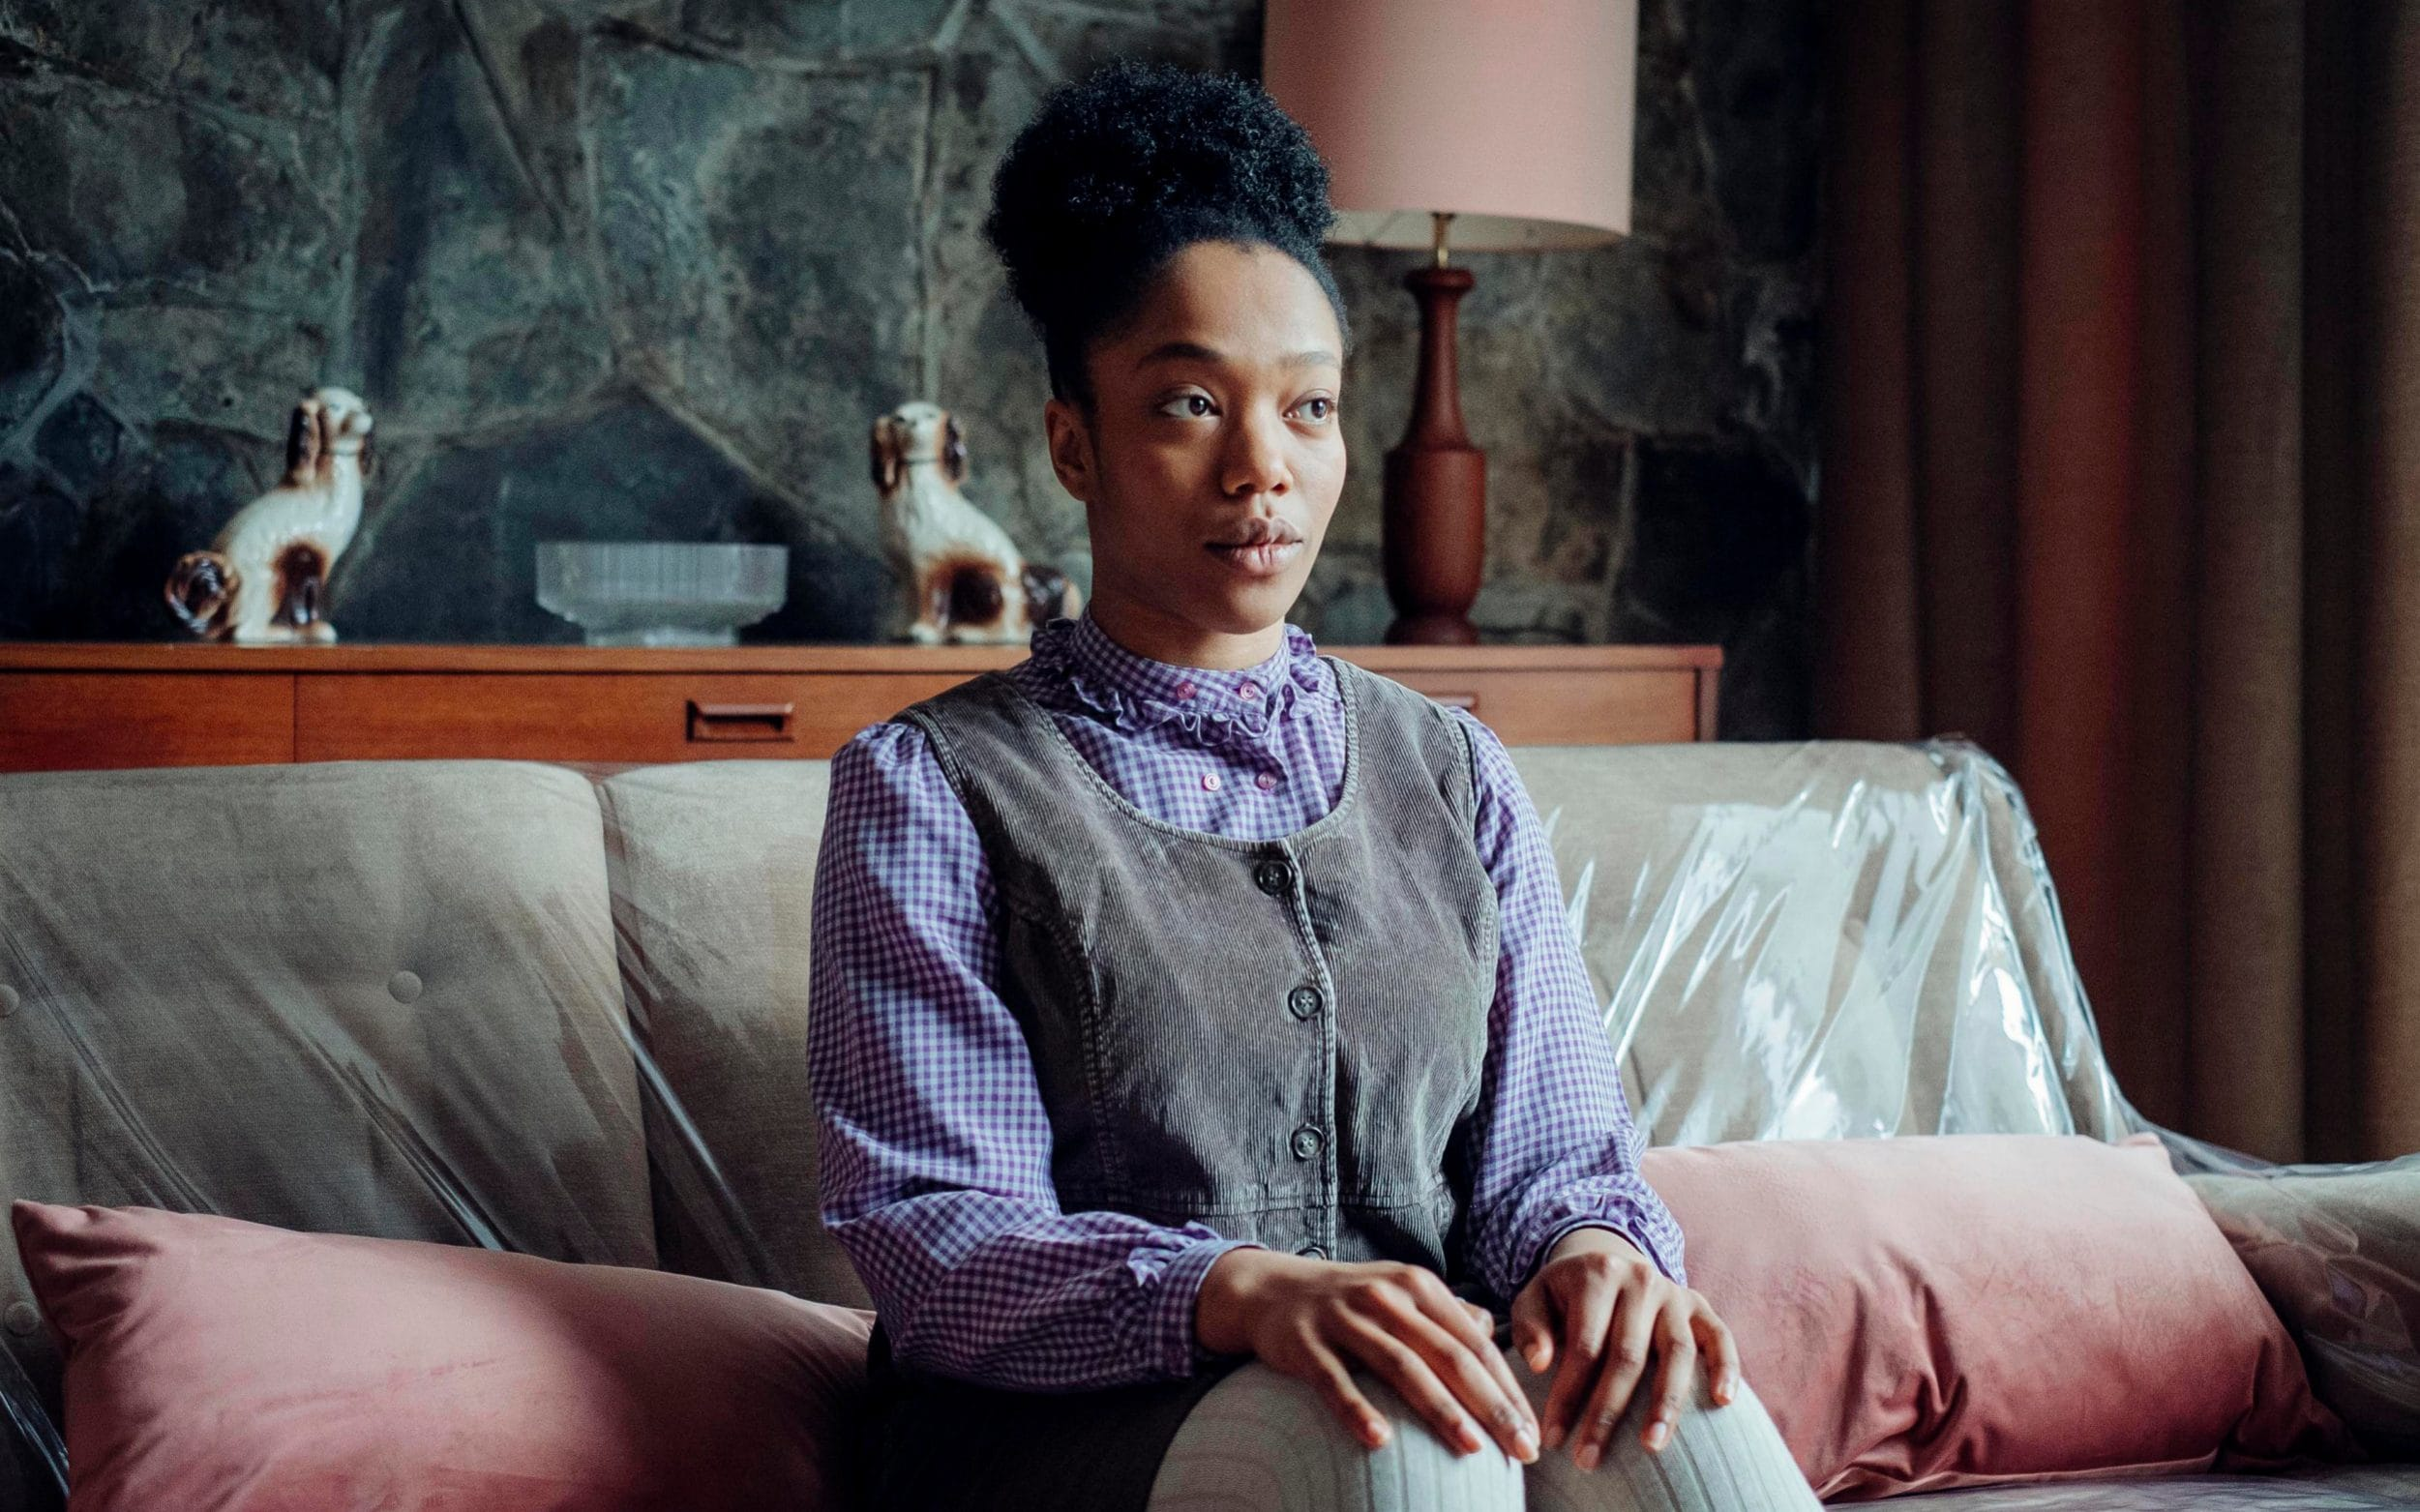 Naomi Ackie in The End of the Fucking World BAFTA TV awards nomination